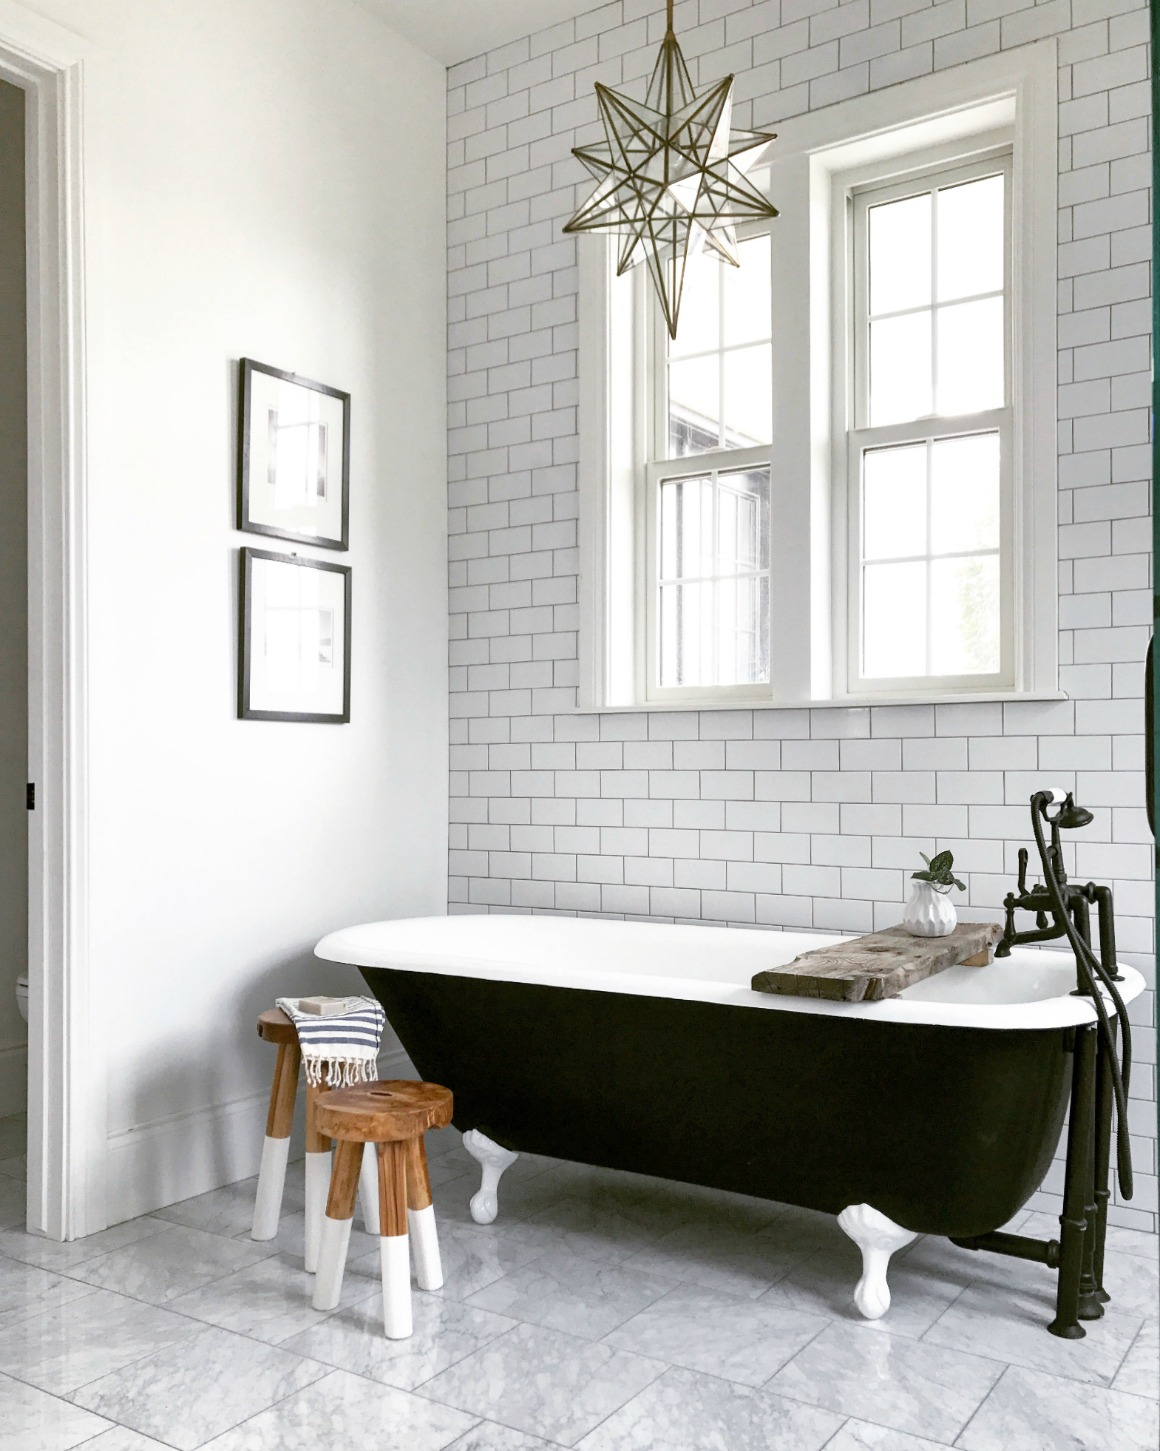 House Tour Master Bath: Master Bedroom And Bath Tour- Mixing Old And New